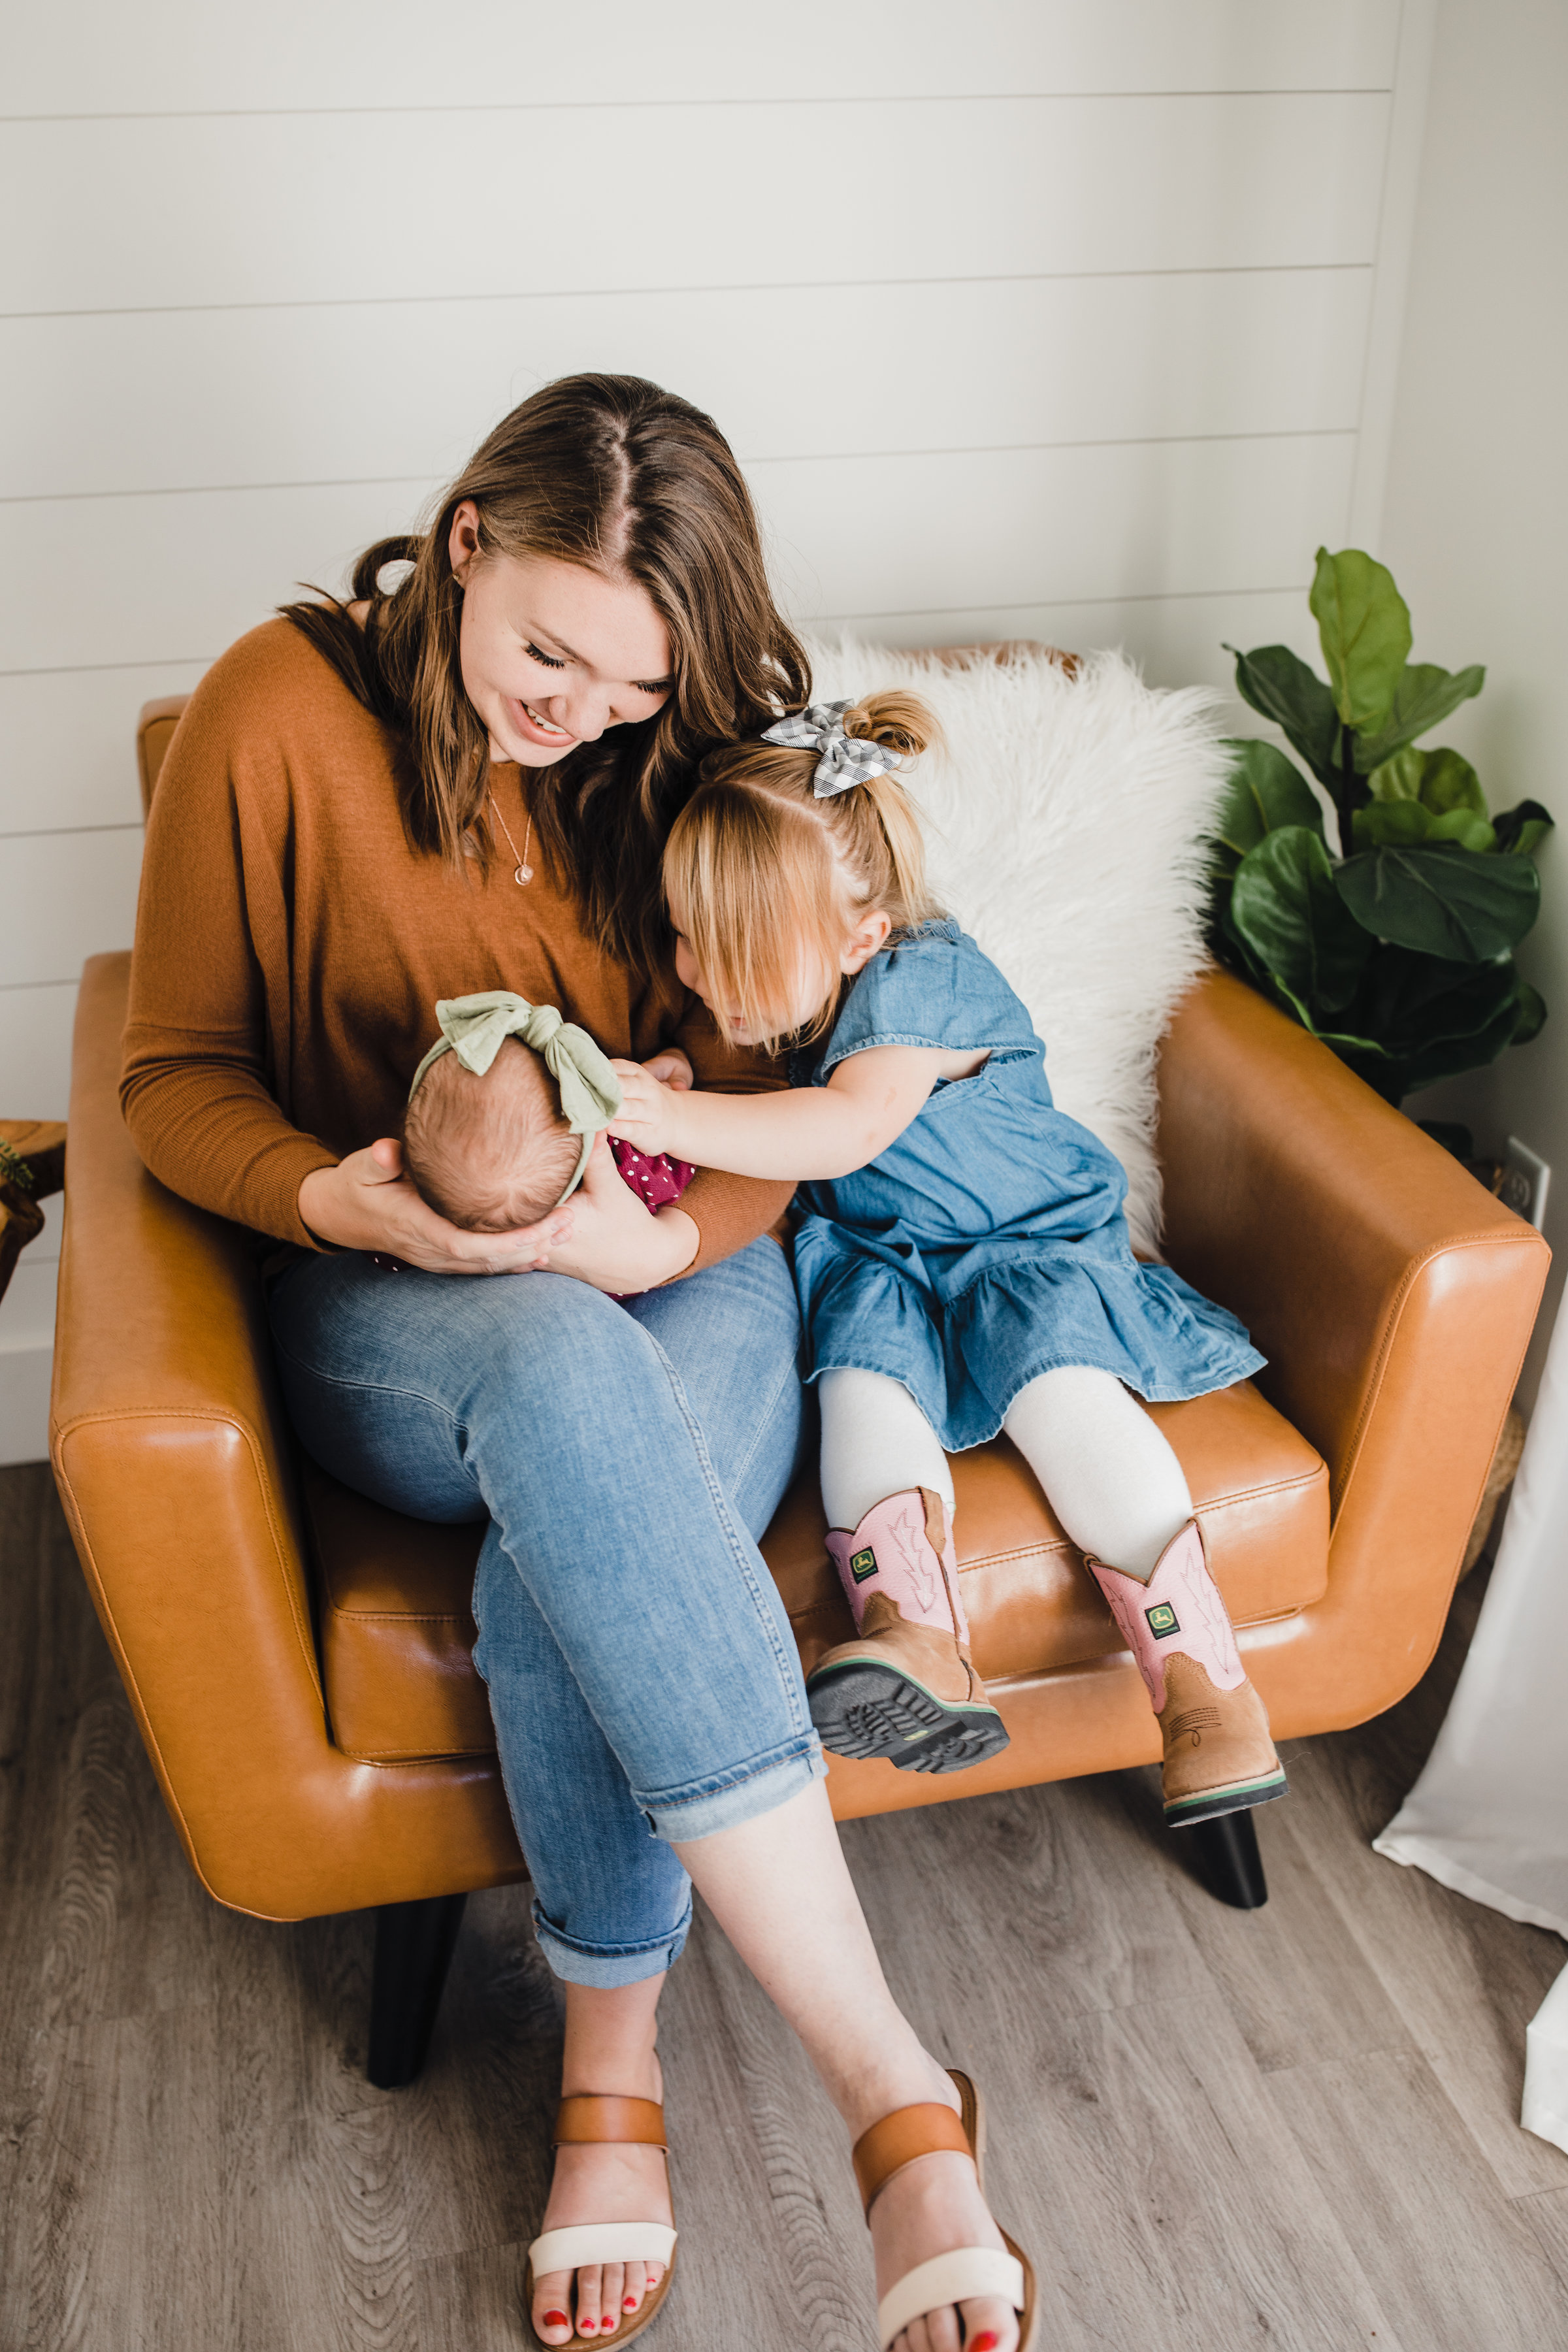 best lifestyle photographer cache valley utah station studio leather chair fur pillow neutral outfits mom big sister holding baby